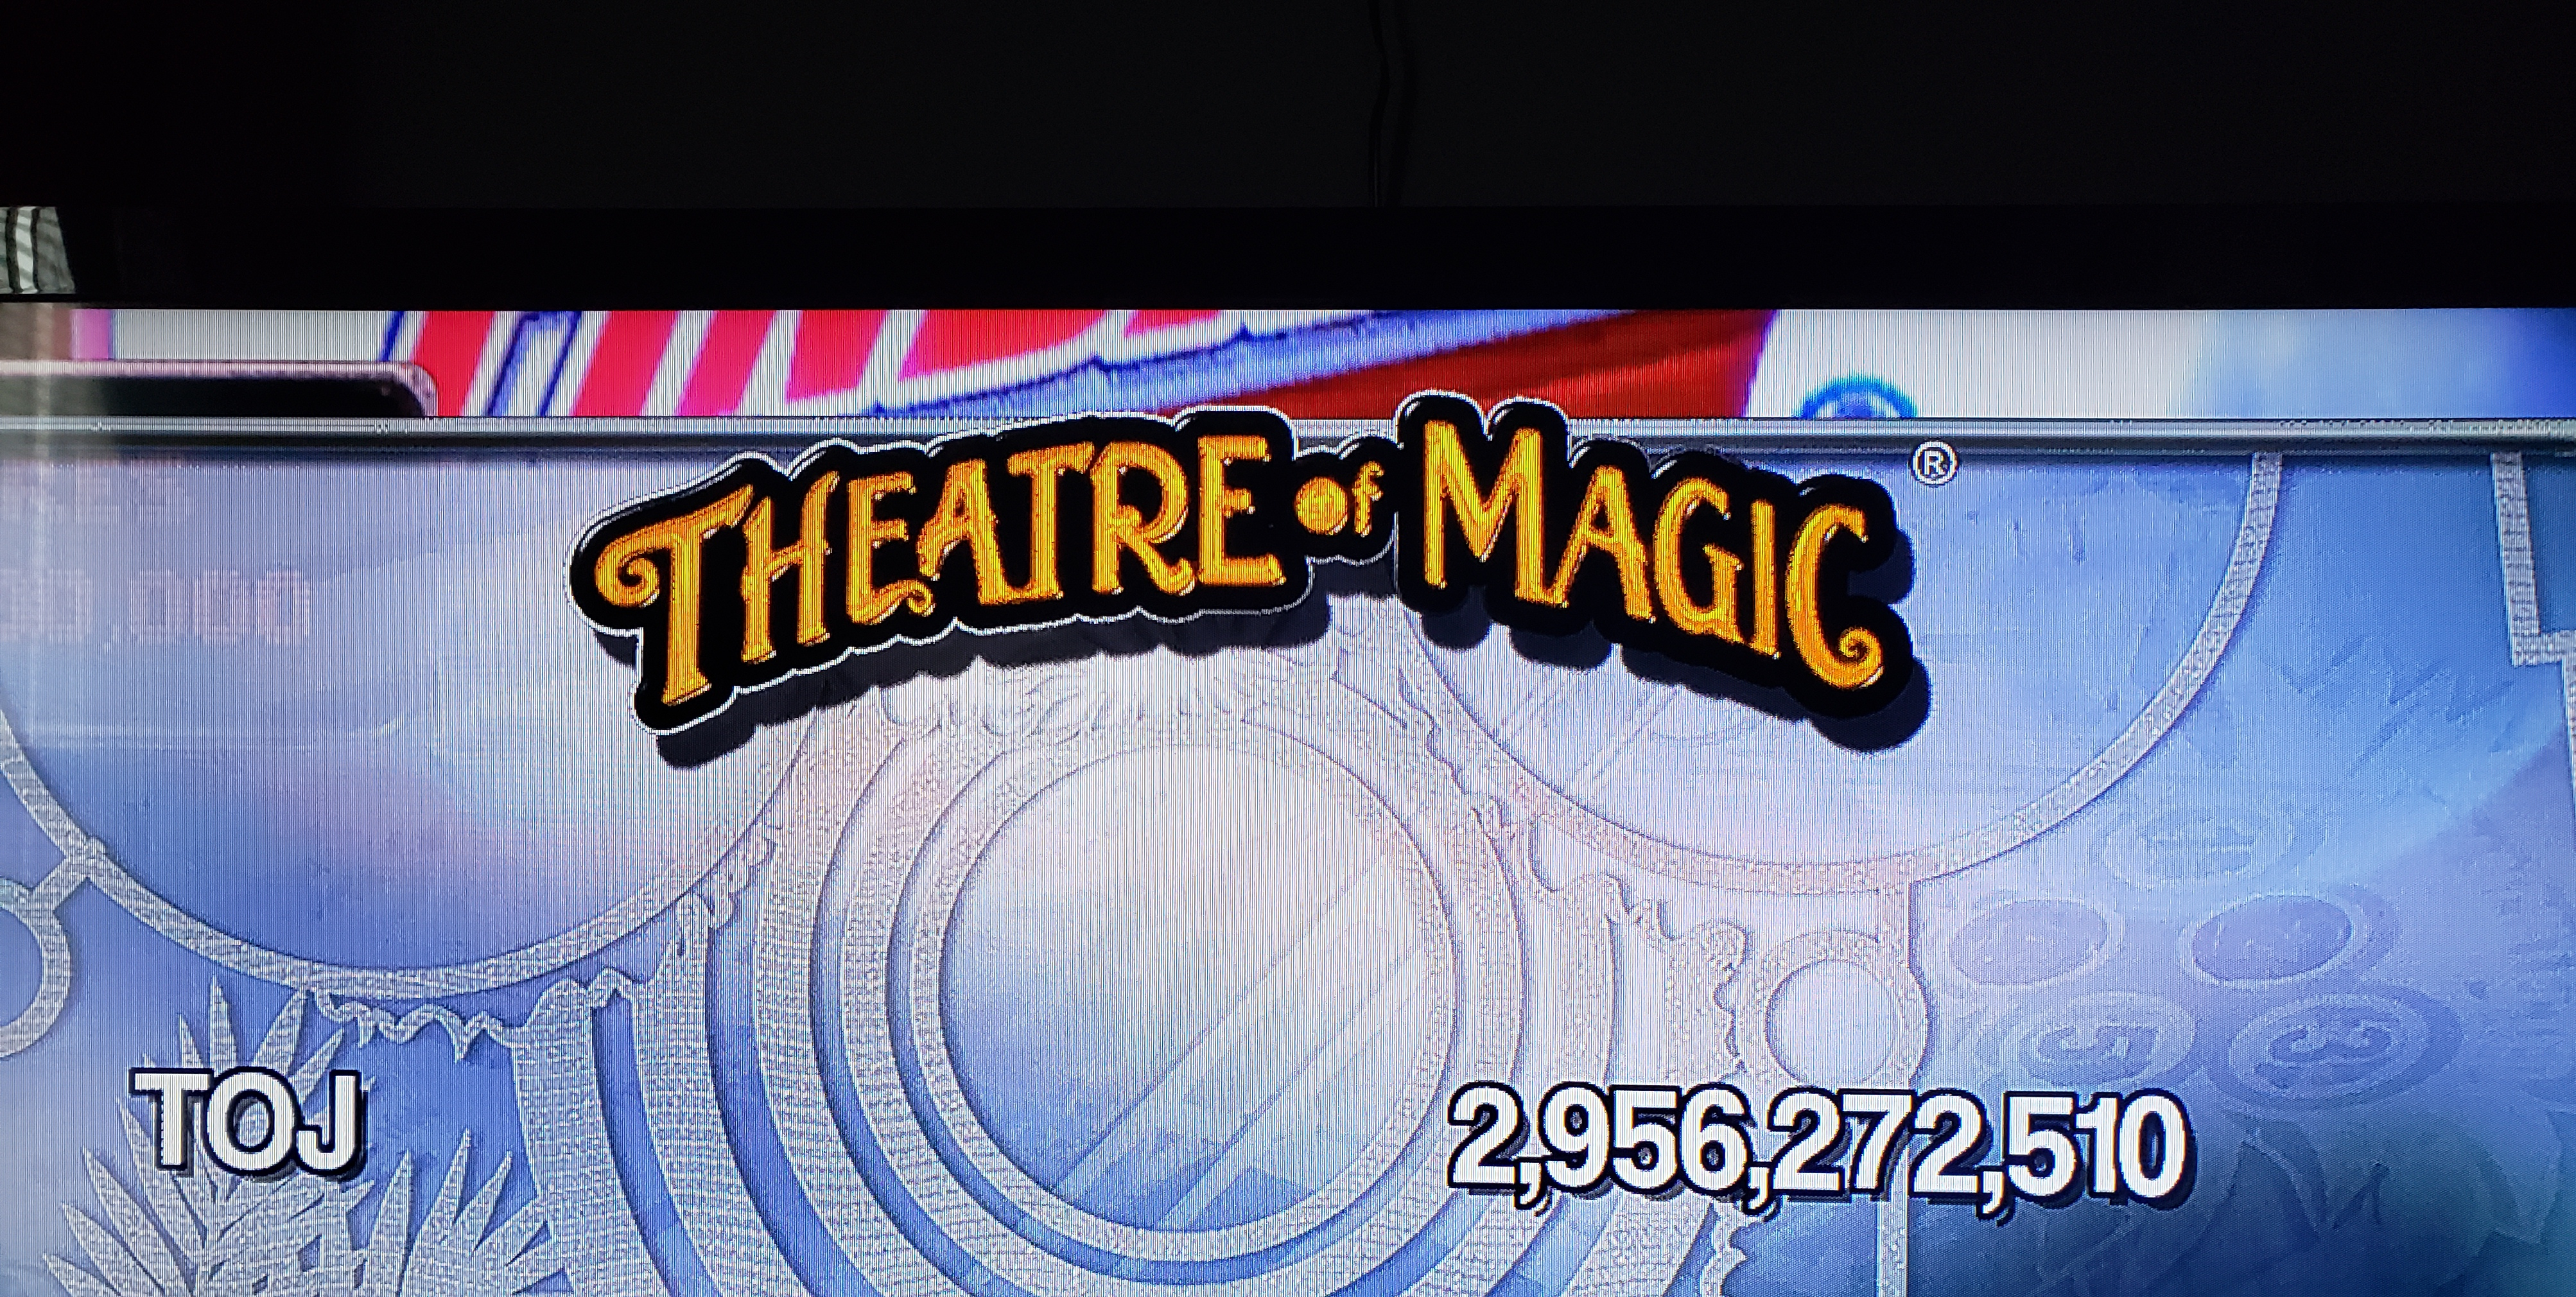 Stryker: Pinball Arcade: Theatre of Magic (Xbox 360) 2,956,272,510 points on 2019-01-13 14:25:52